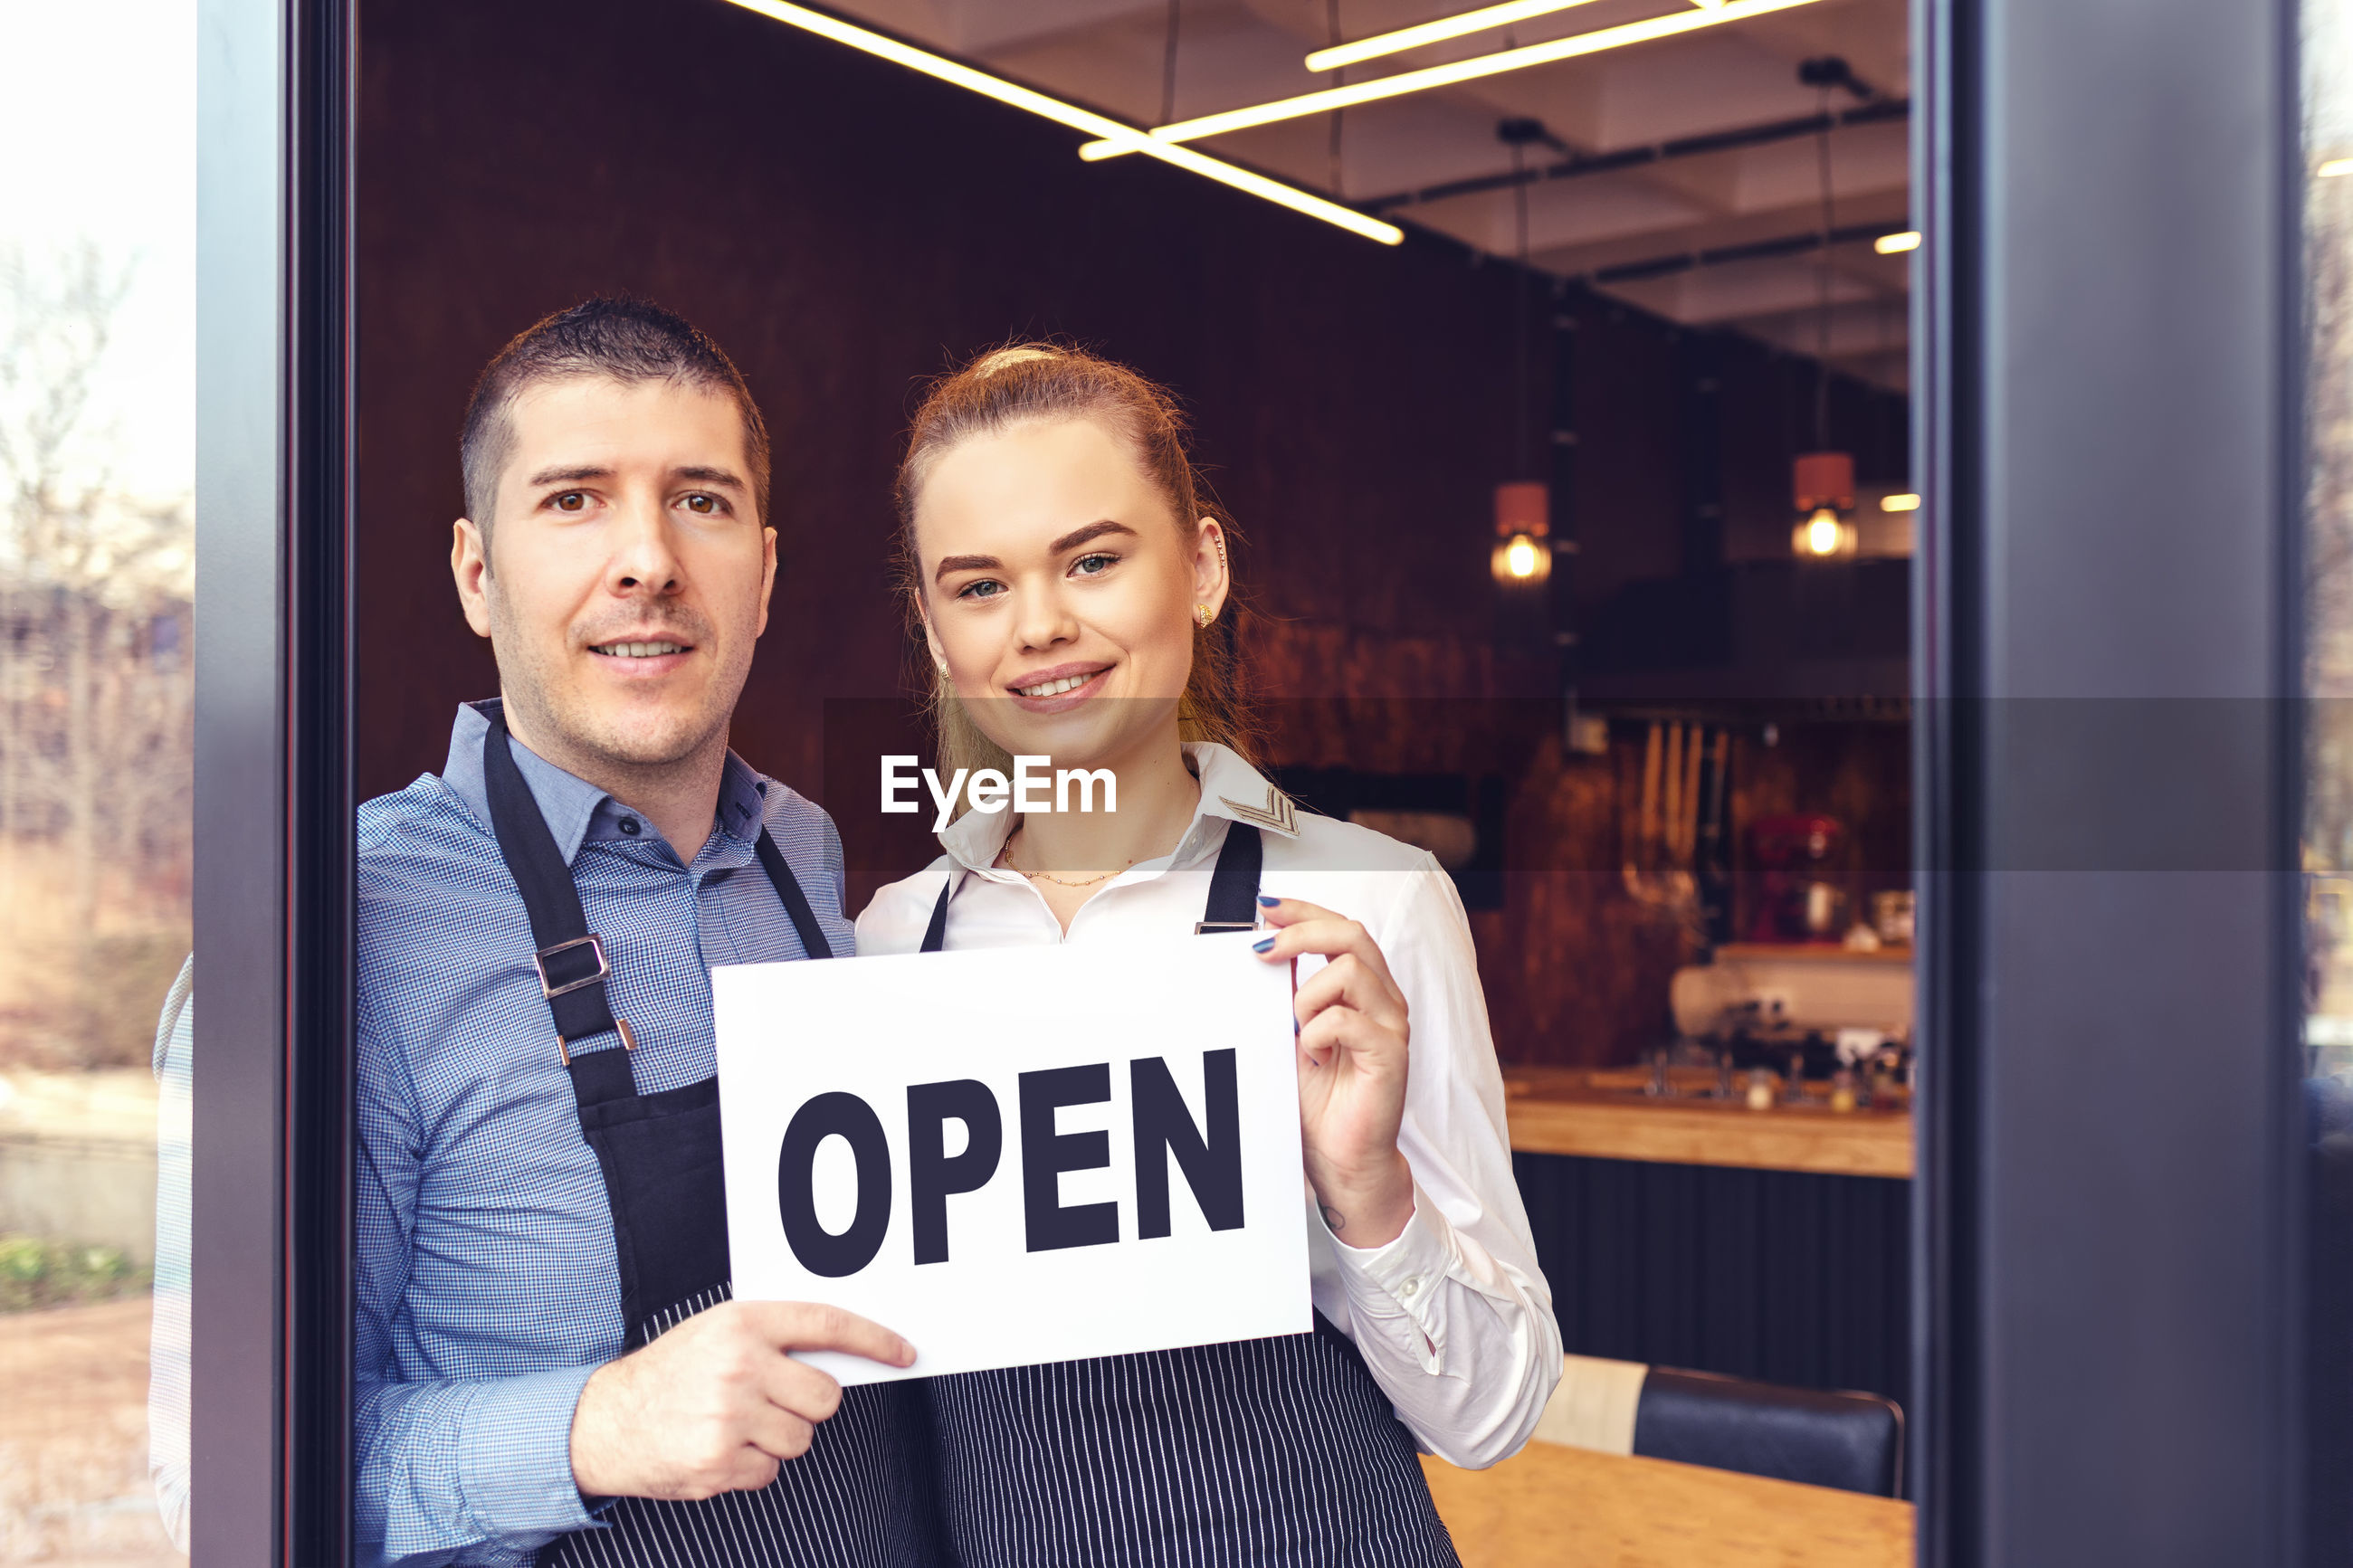 Portrait of smiling coworkers holding open sign in restaurant